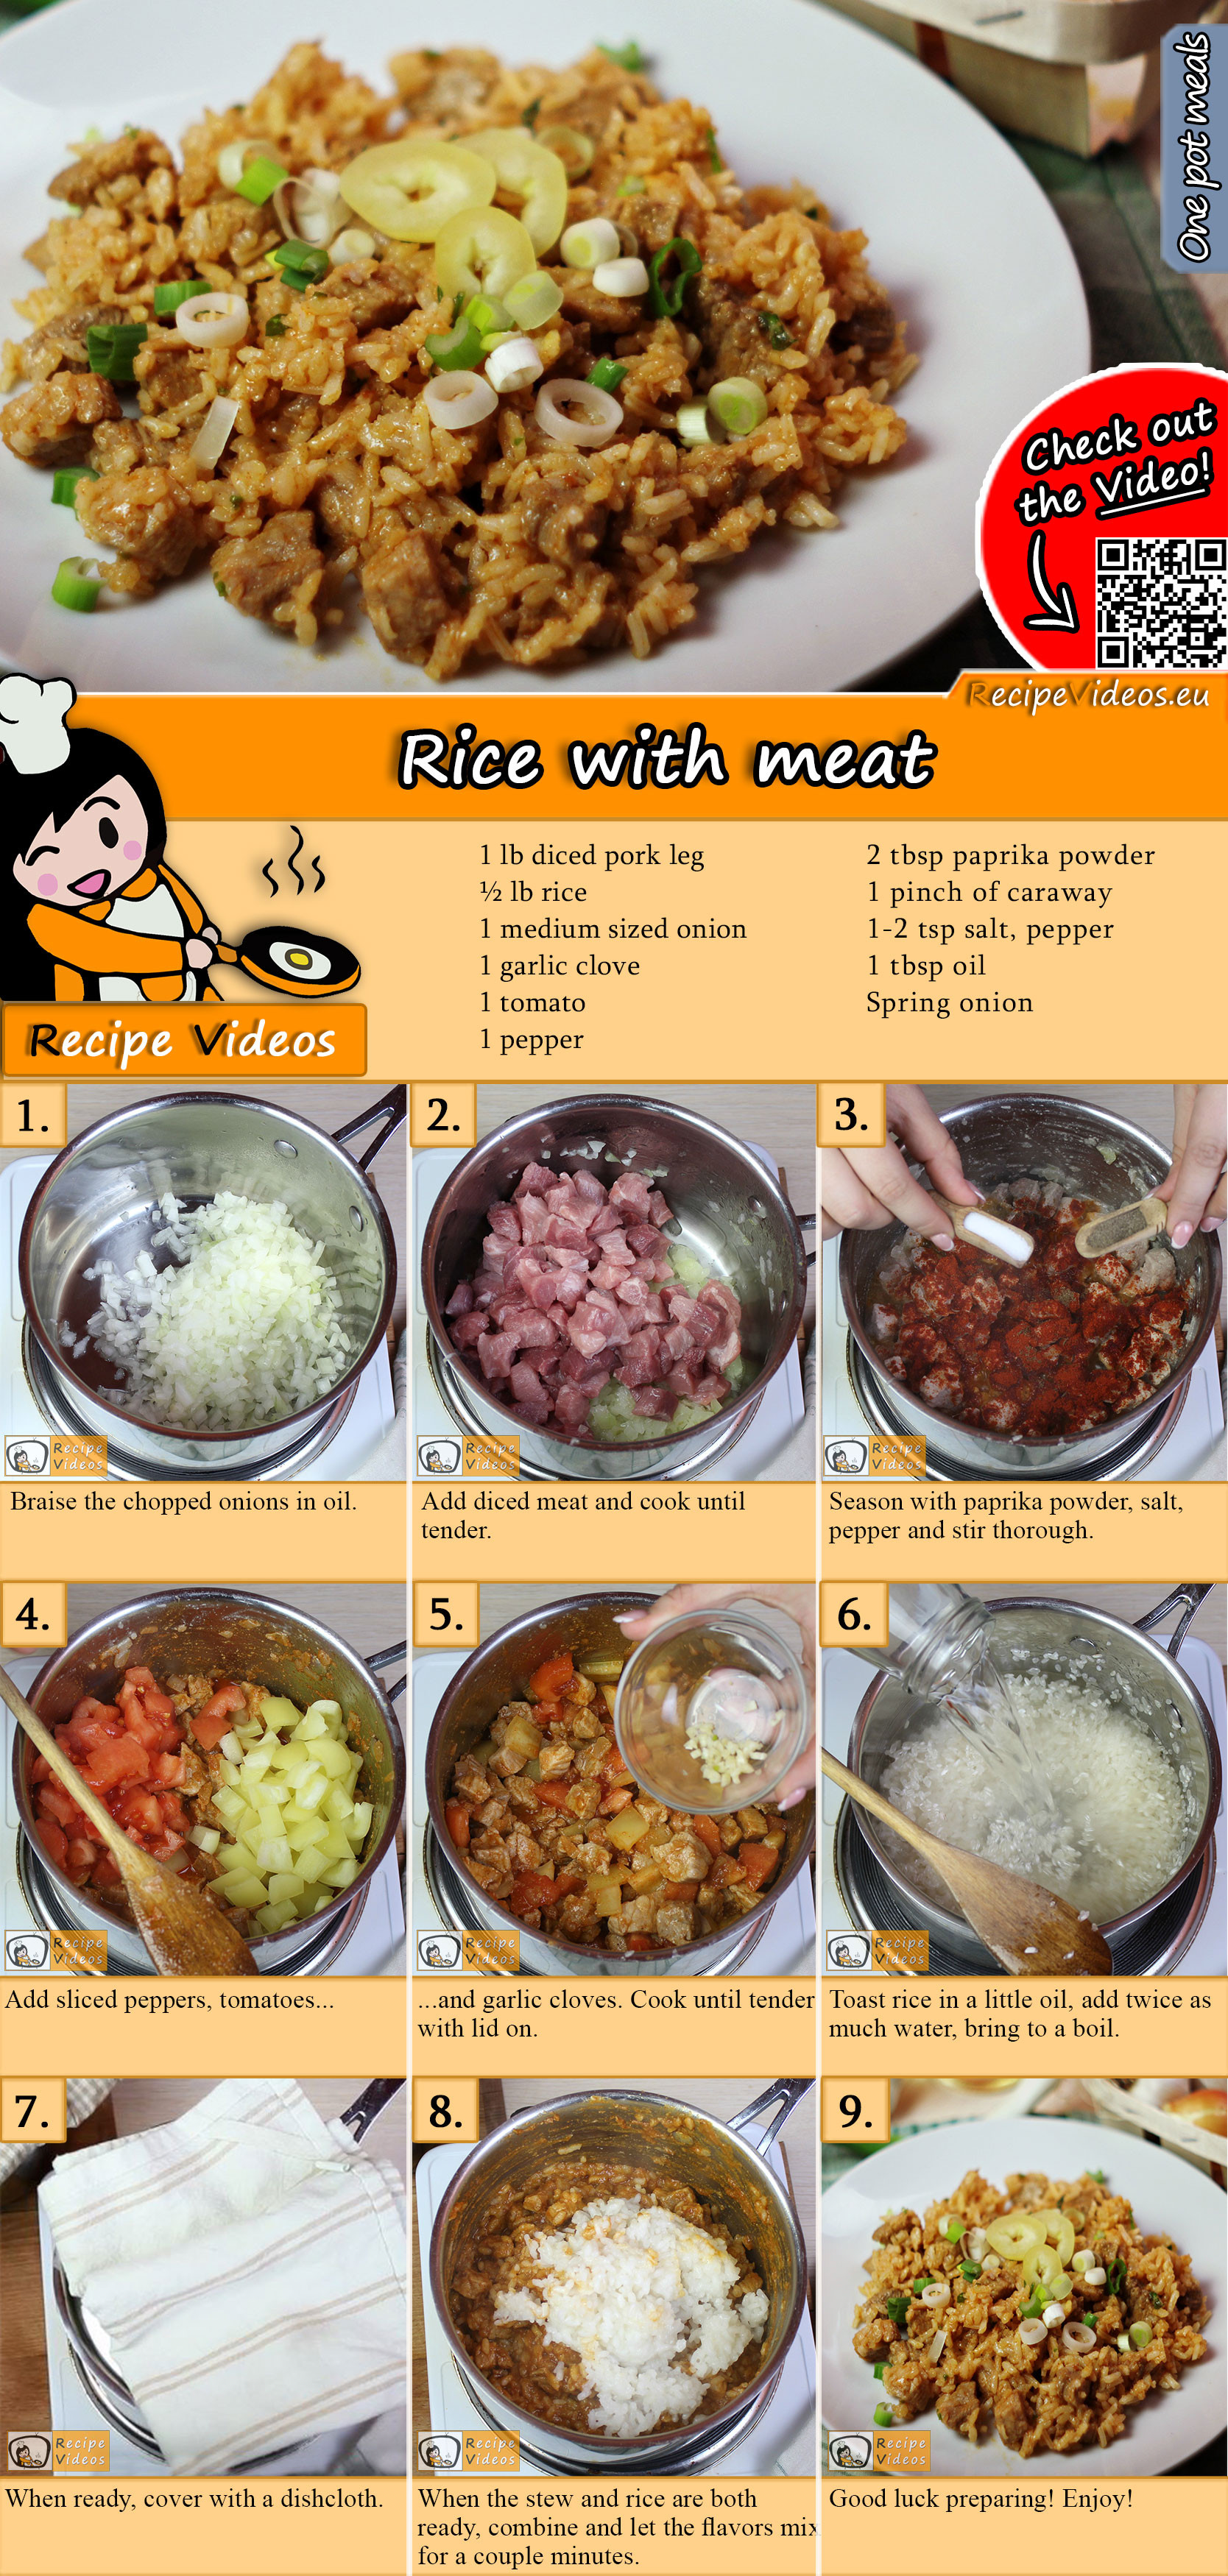 Rice with meat recipe with video